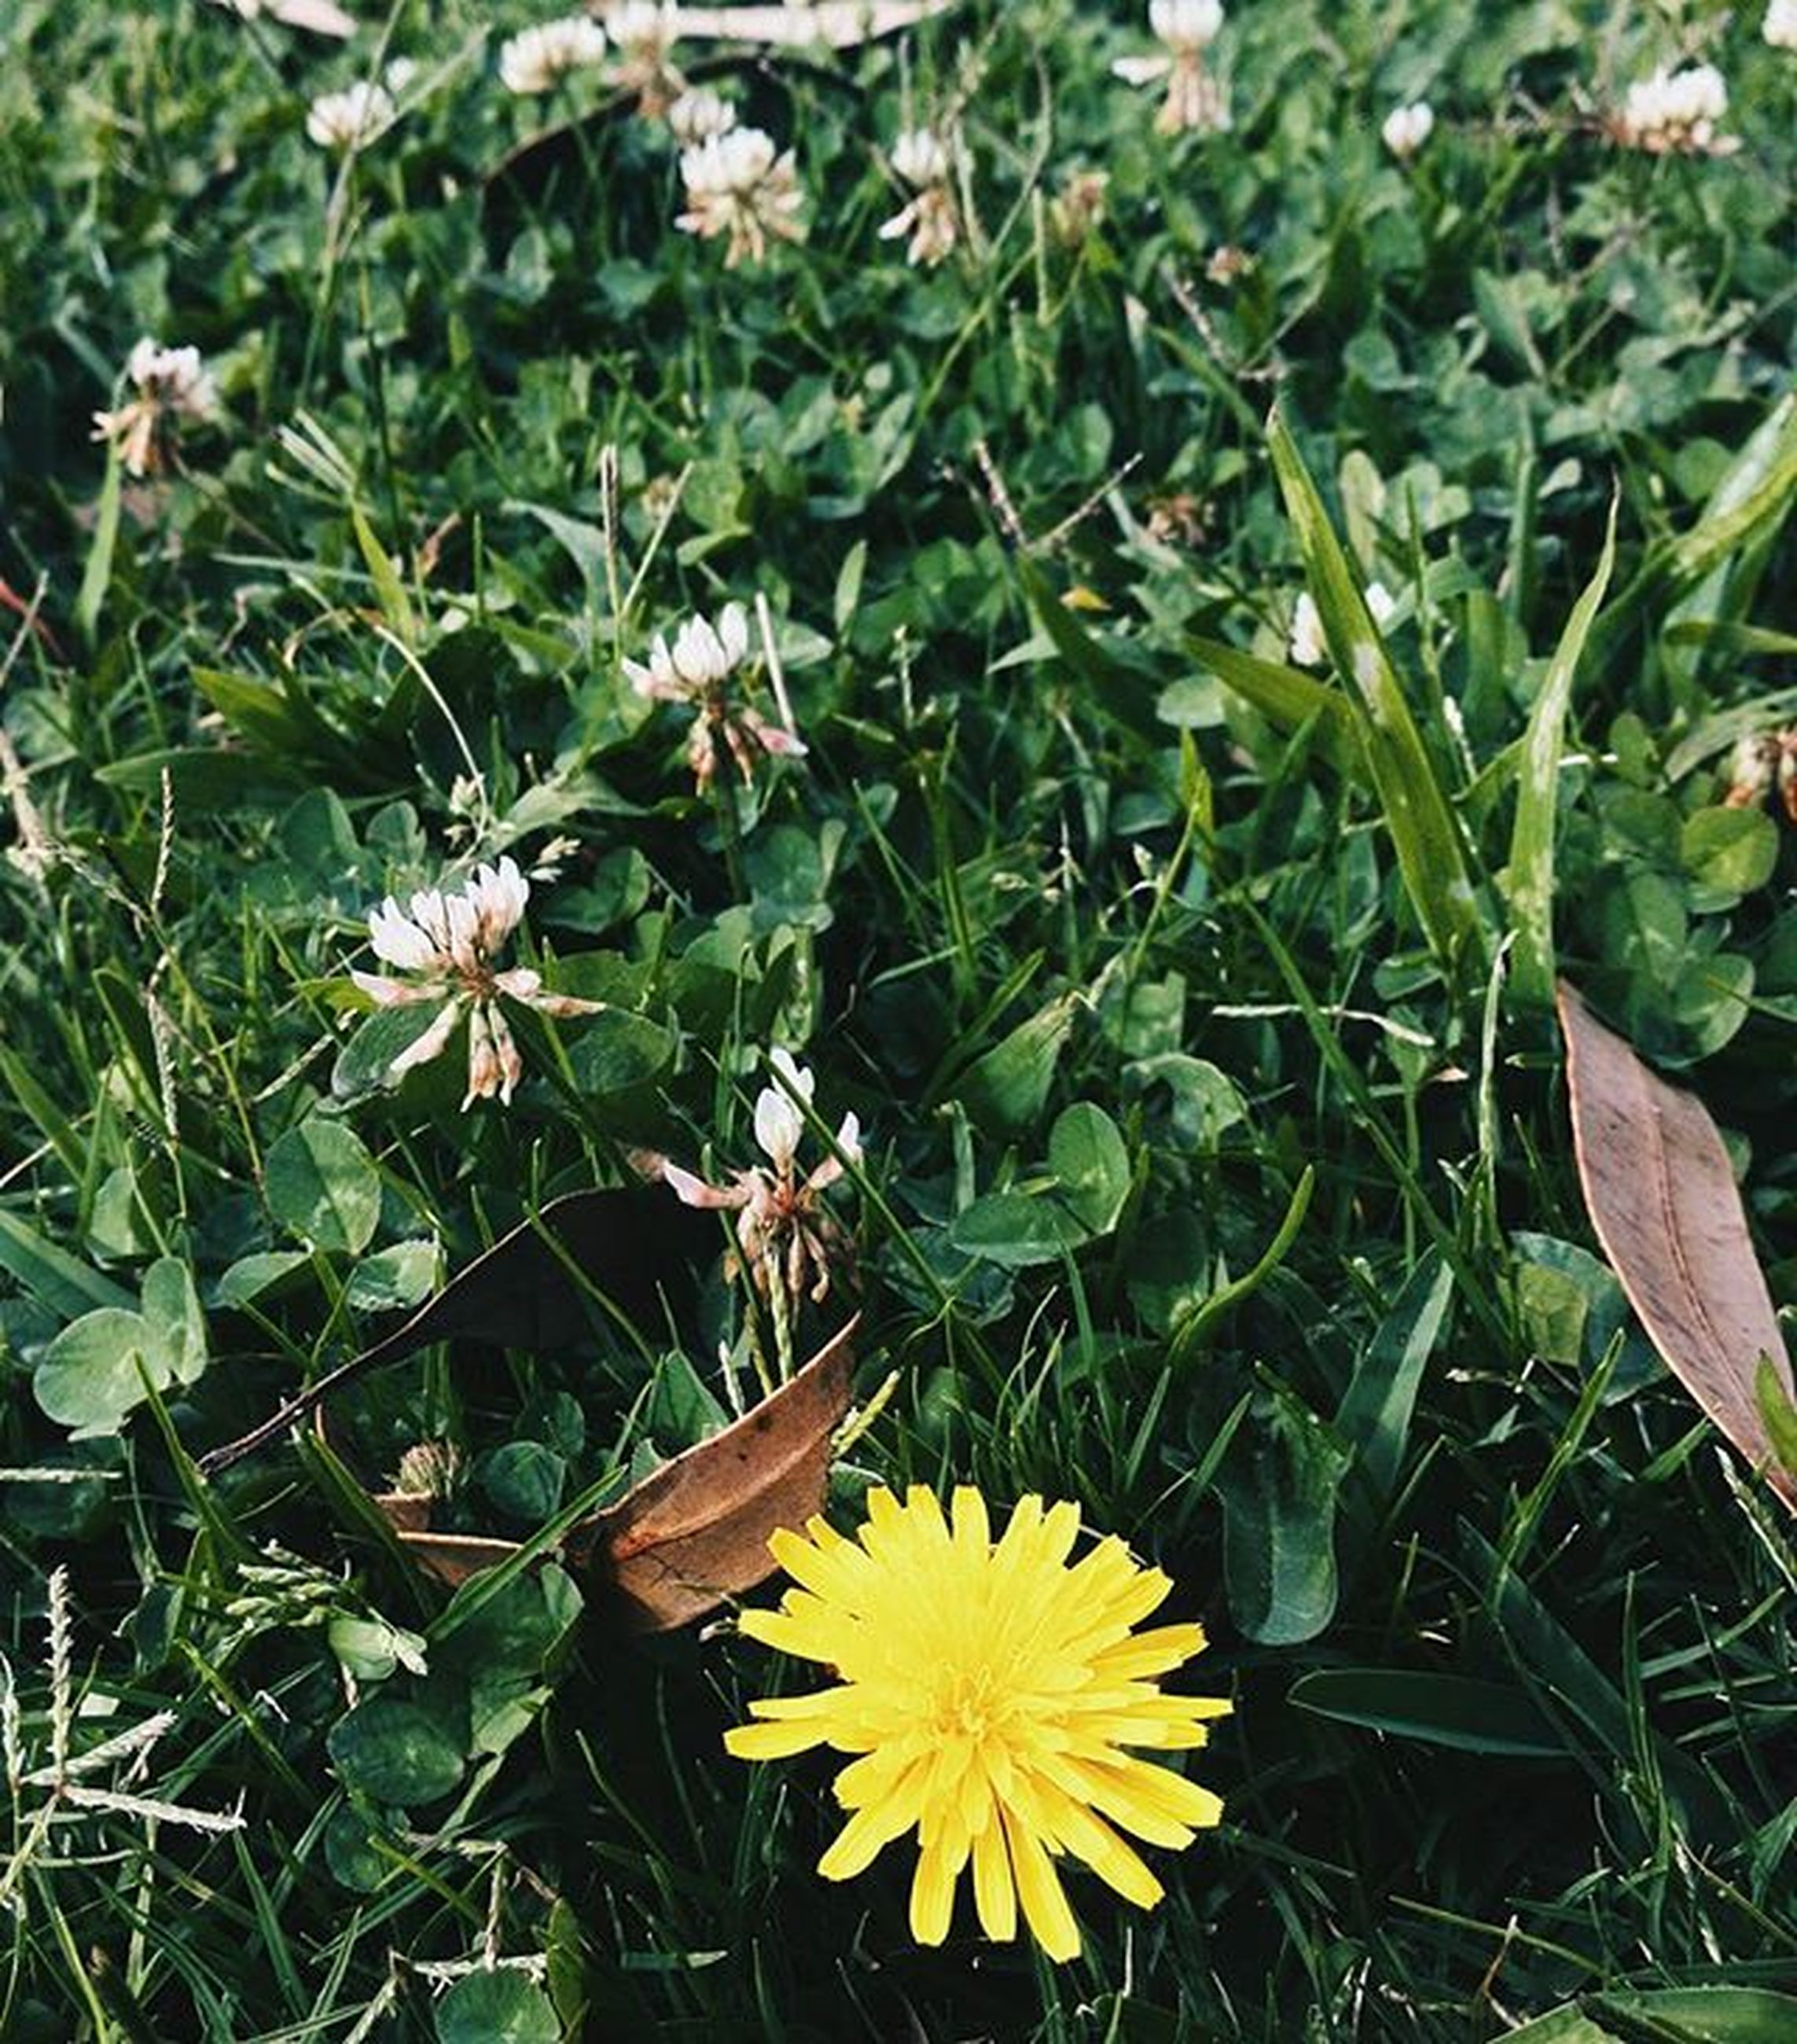 flower, petal, yellow, fragility, freshness, growth, high angle view, plant, flower head, grass, beauty in nature, field, nature, blooming, leaf, green color, in bloom, day, daisy, outdoors